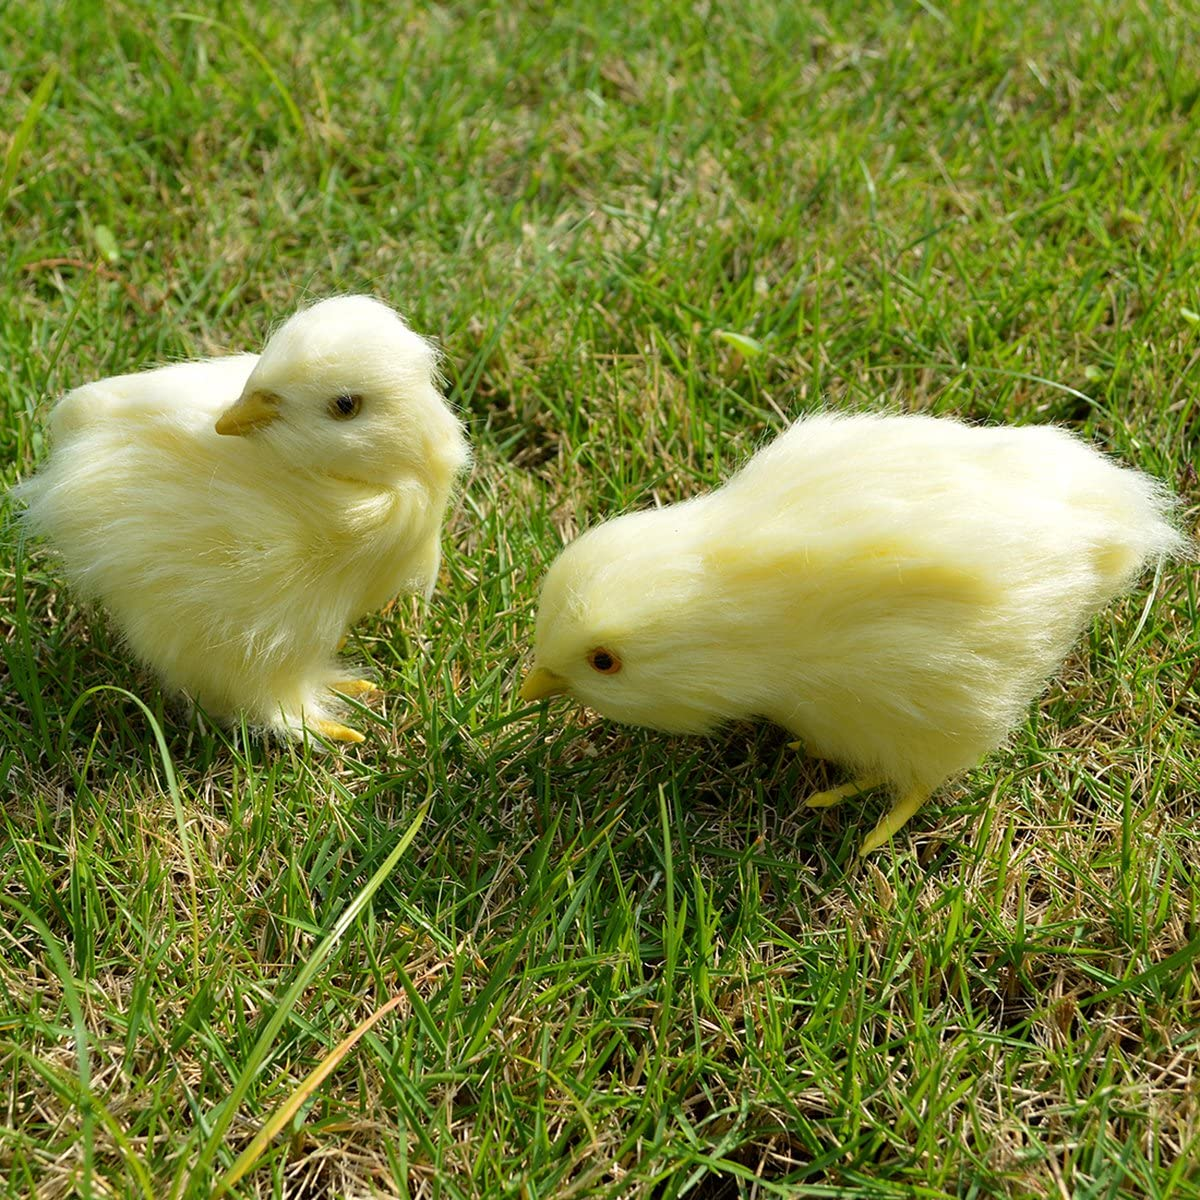 2pcs Spring Easter Chick Decor - Realistic Eat Fly Yellow Baby Chick Lifelike Furry Chicken Figurine Rabbit Fur Plush Animal Toy Easter Holiday Decoration Prop Photography (Eatting + Looking Back)